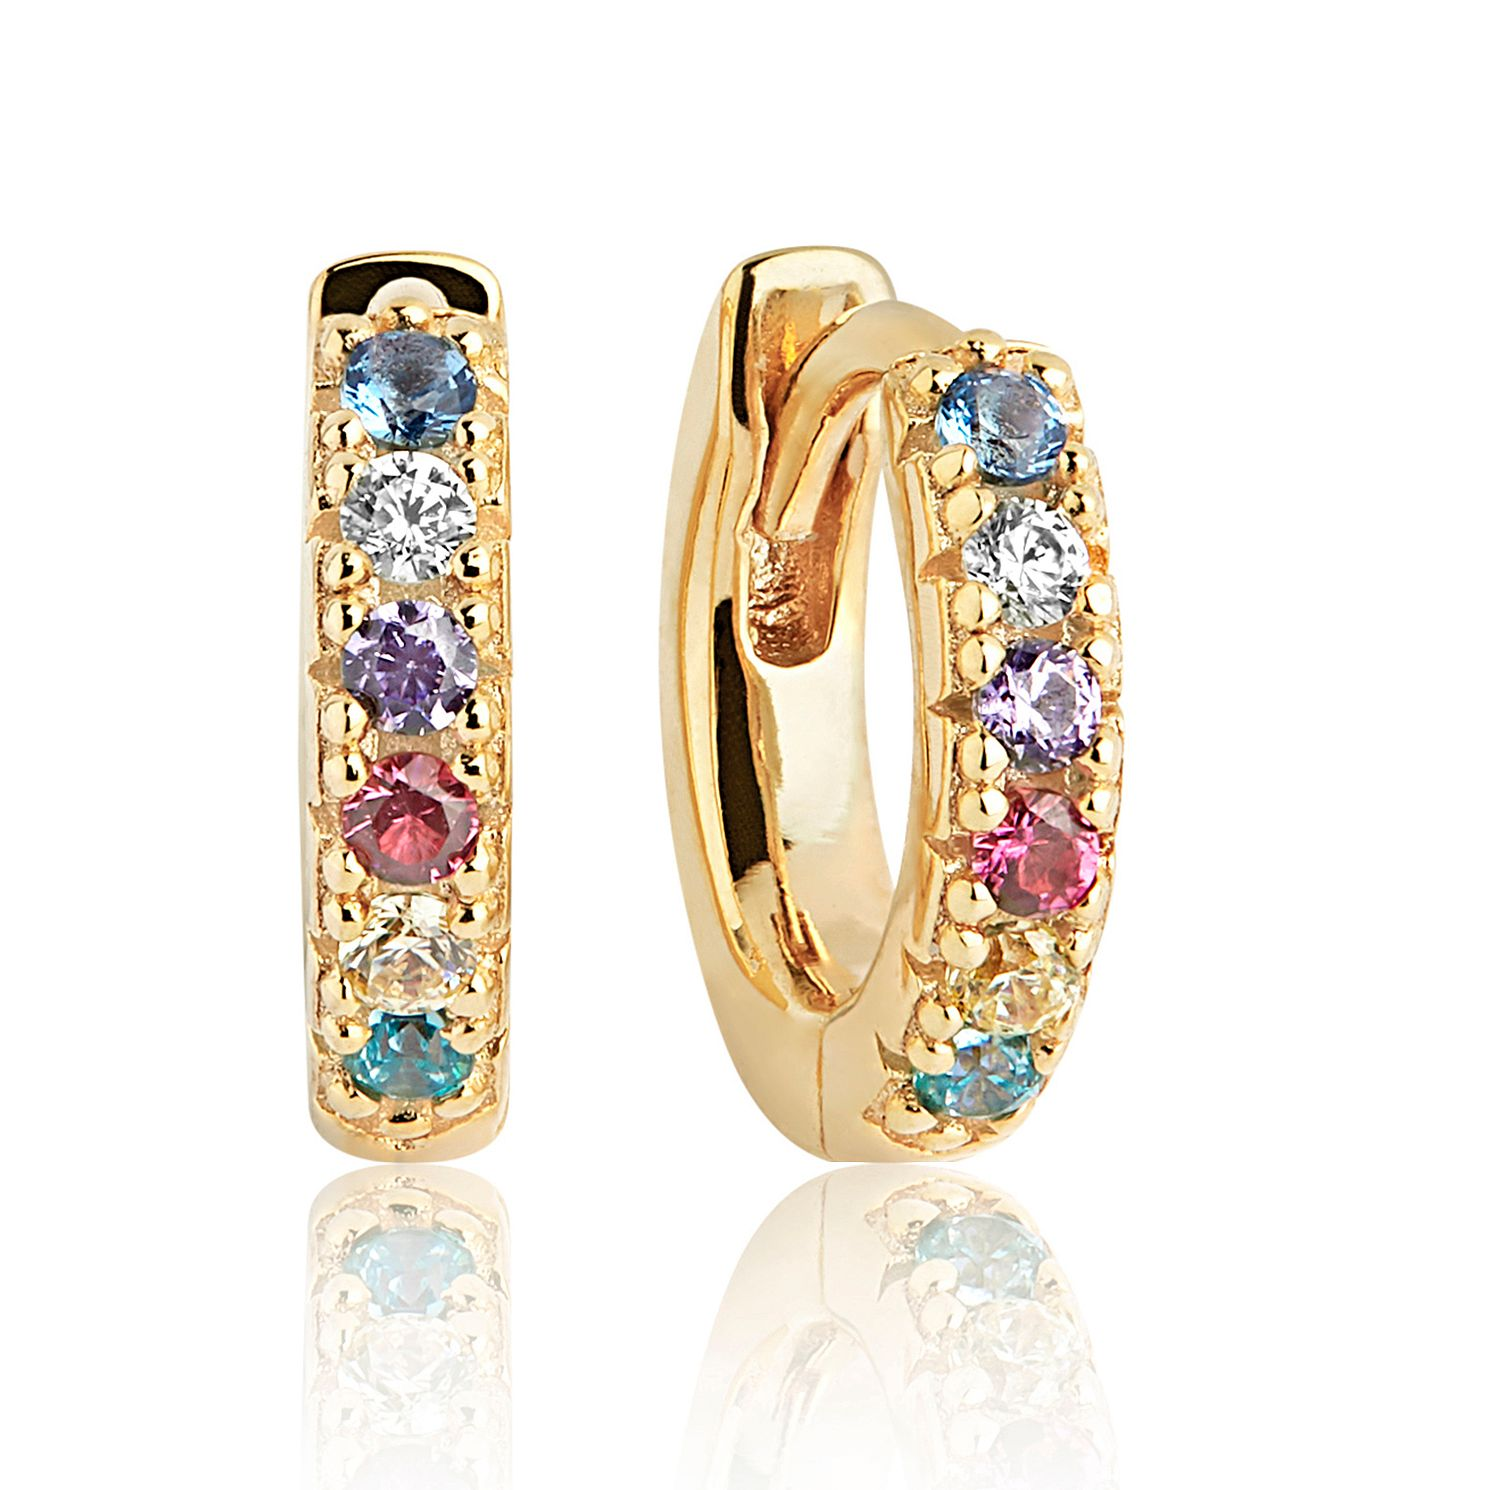 Sif Jakobs 18ct Gold Plate Multi Zirconia 14mm Hoop Earrings - Product number 4705076